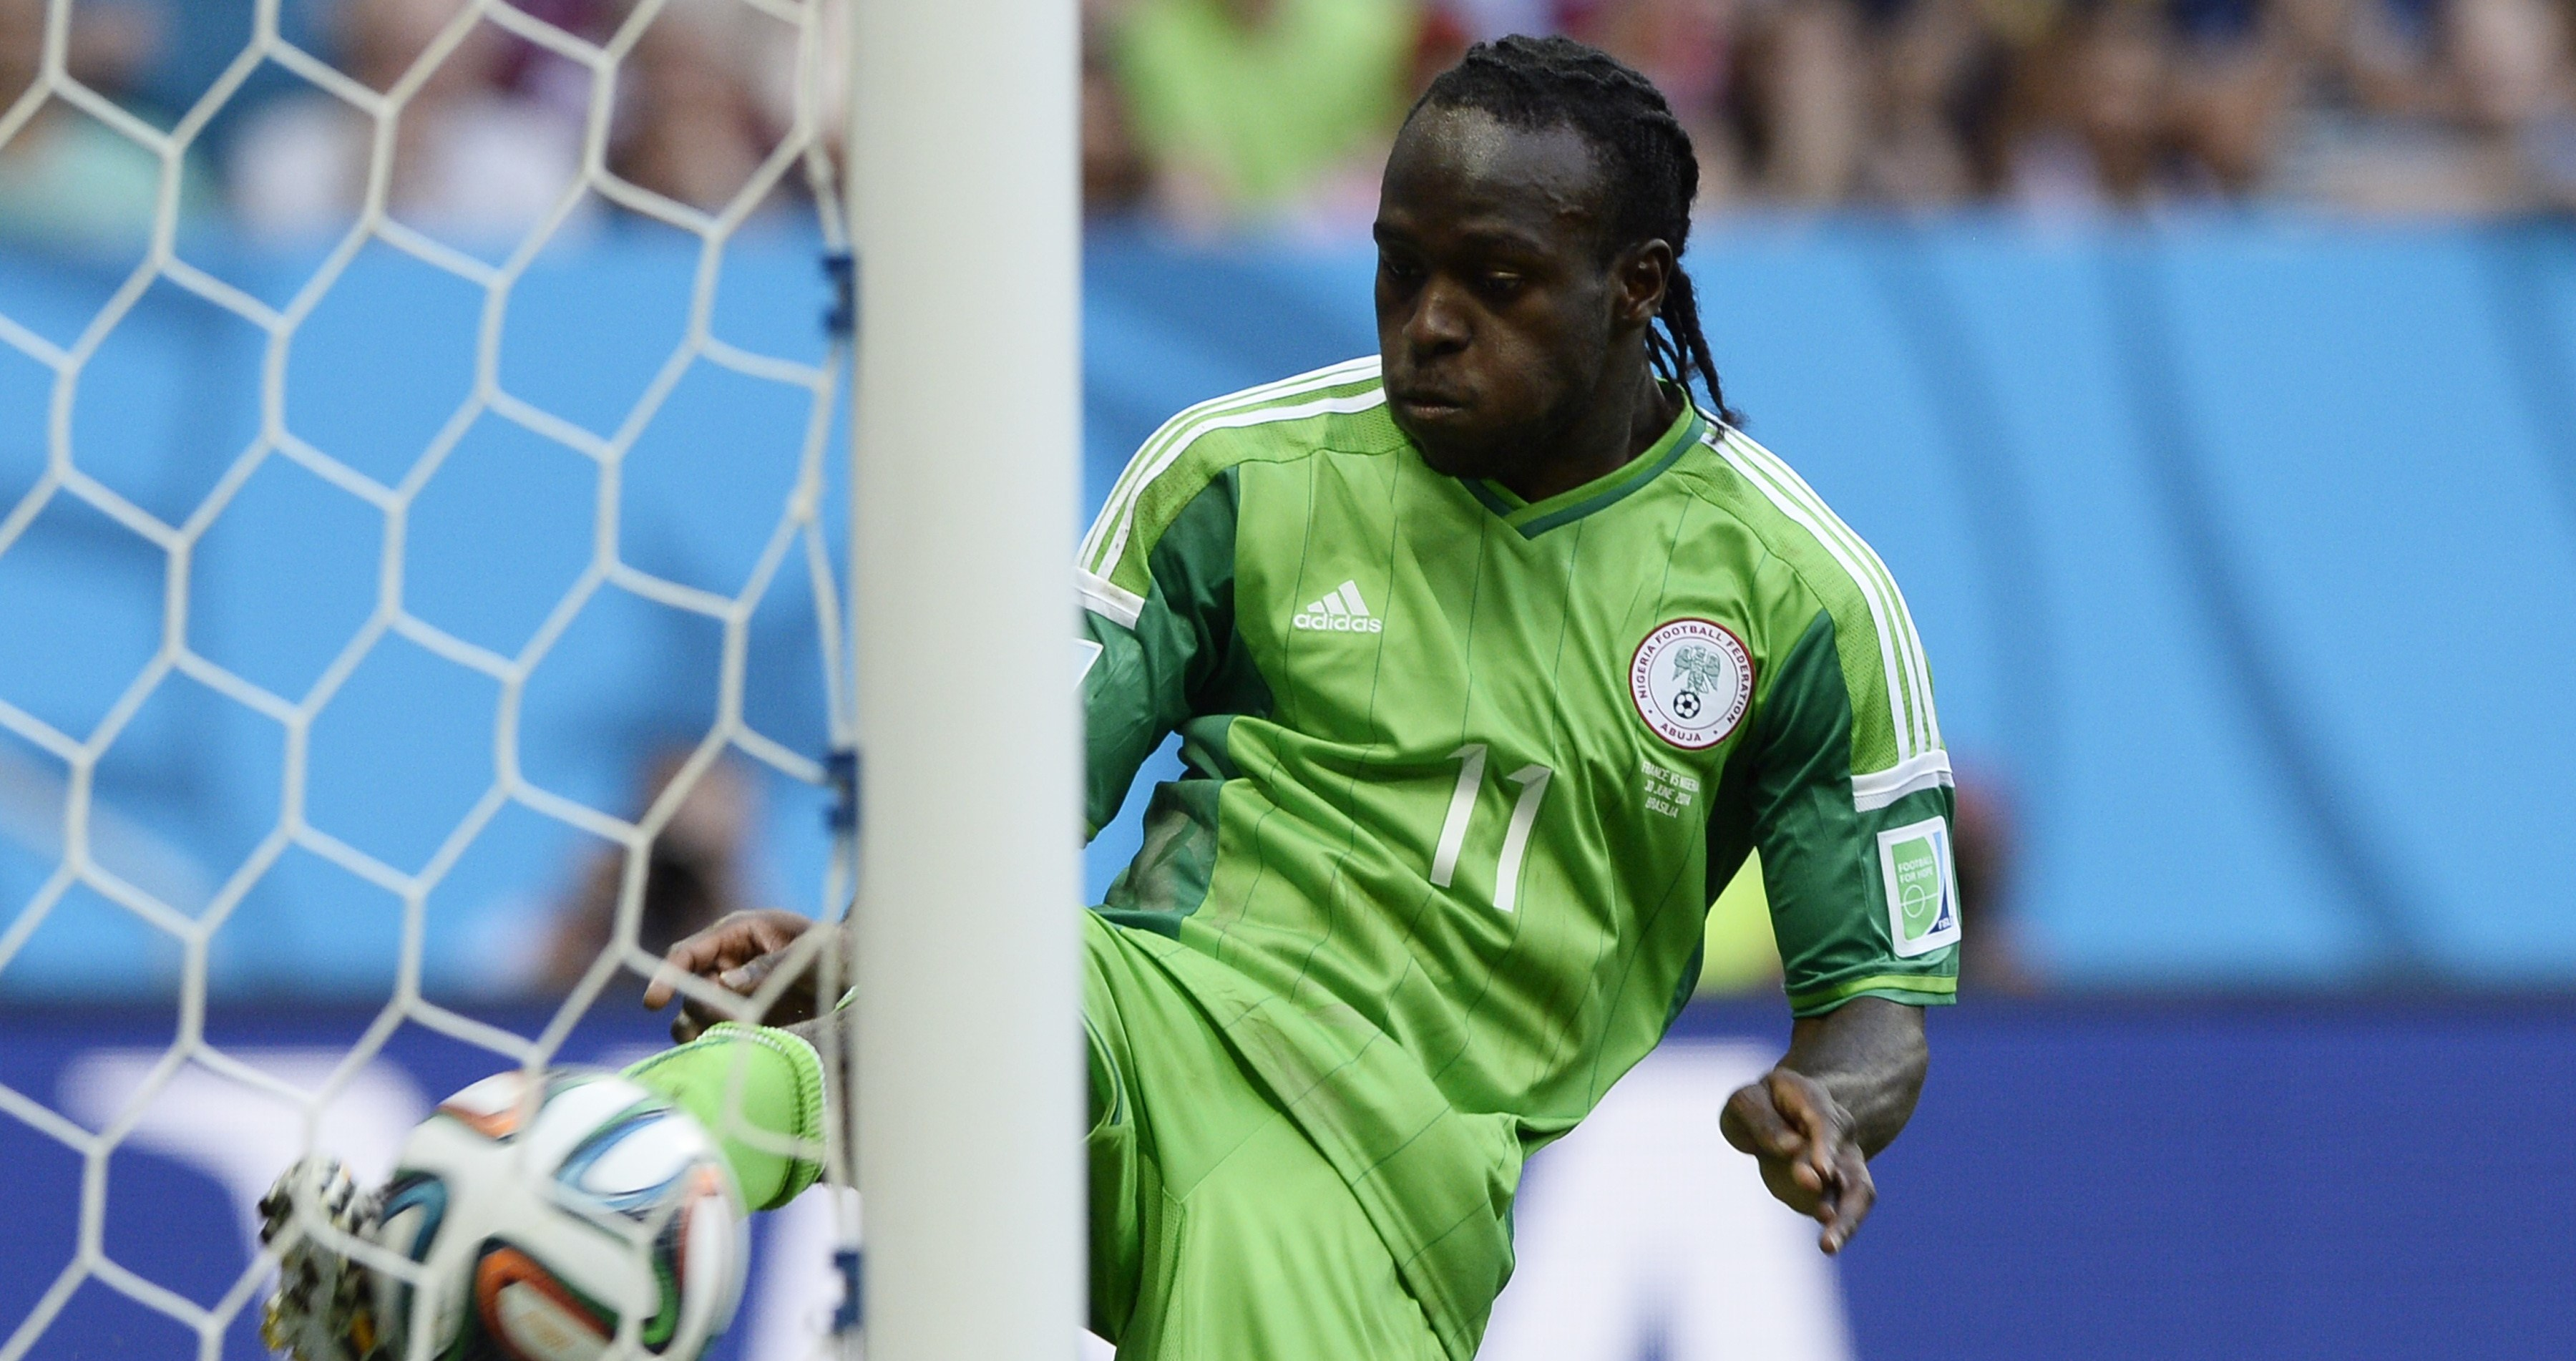 New Chelsea deal for Nigerian international Victor Moses